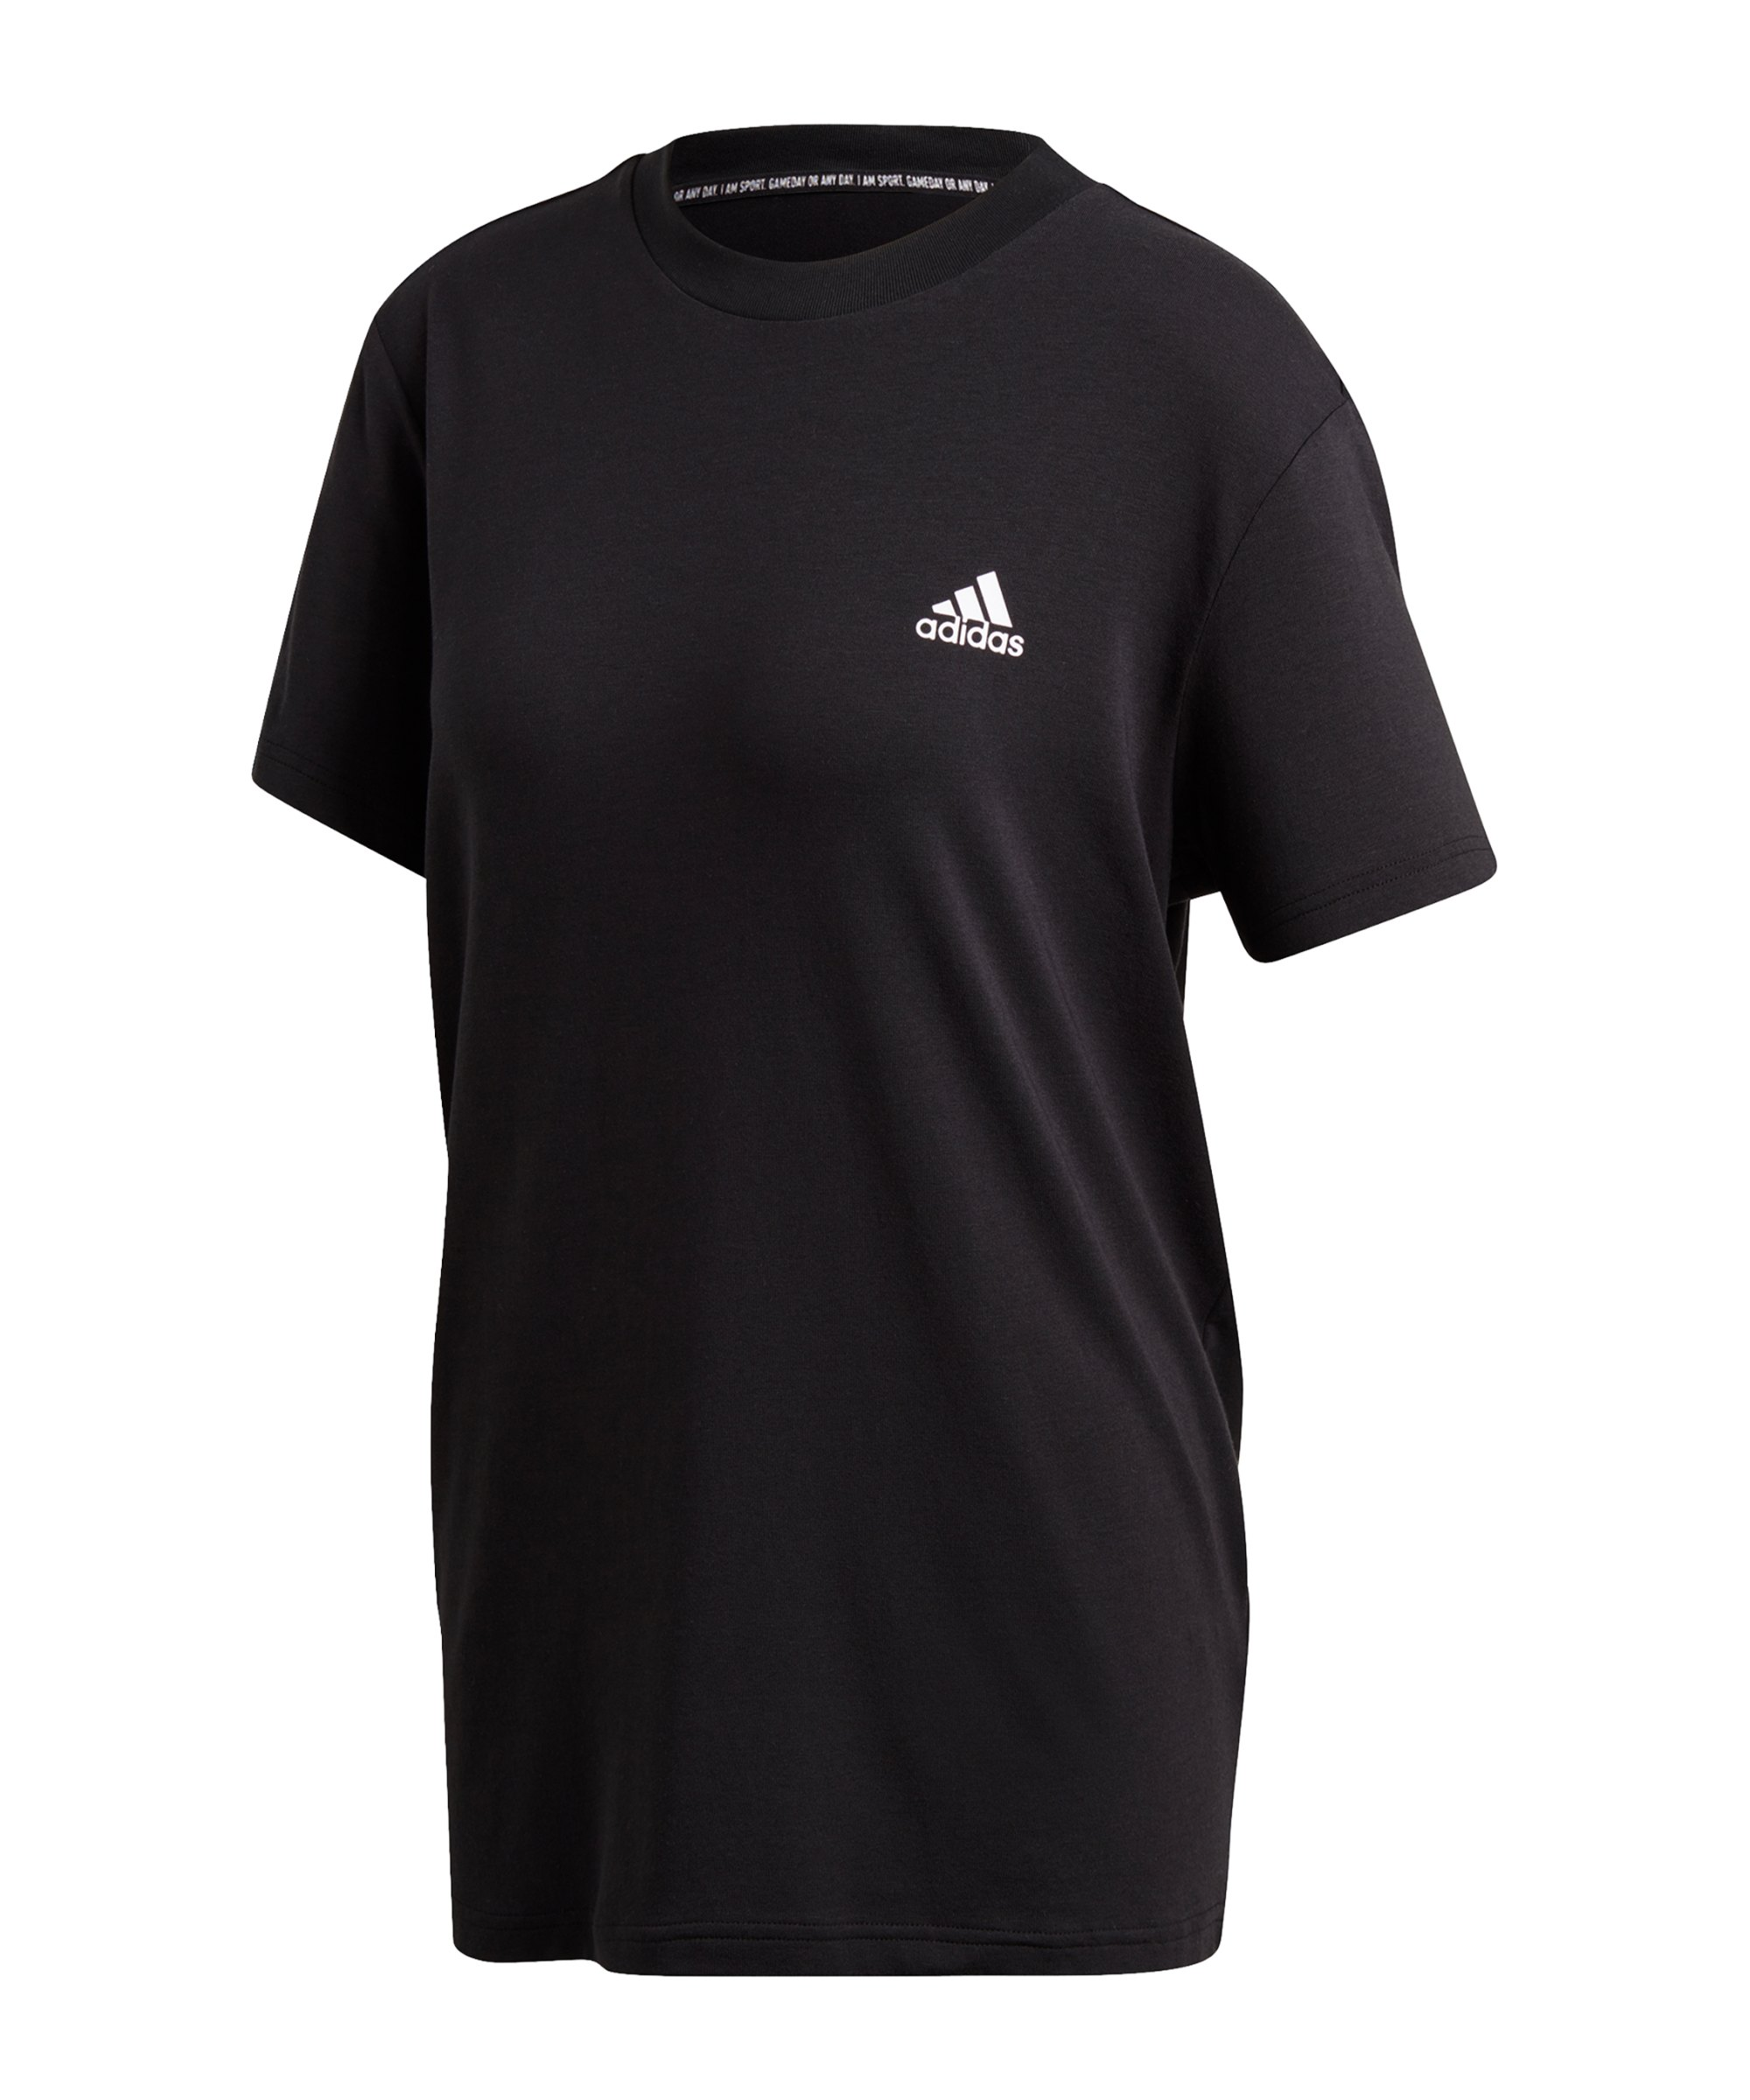 adidas Must Haves 3 Stripes T-Shirt Damen Schwarz - schwarz